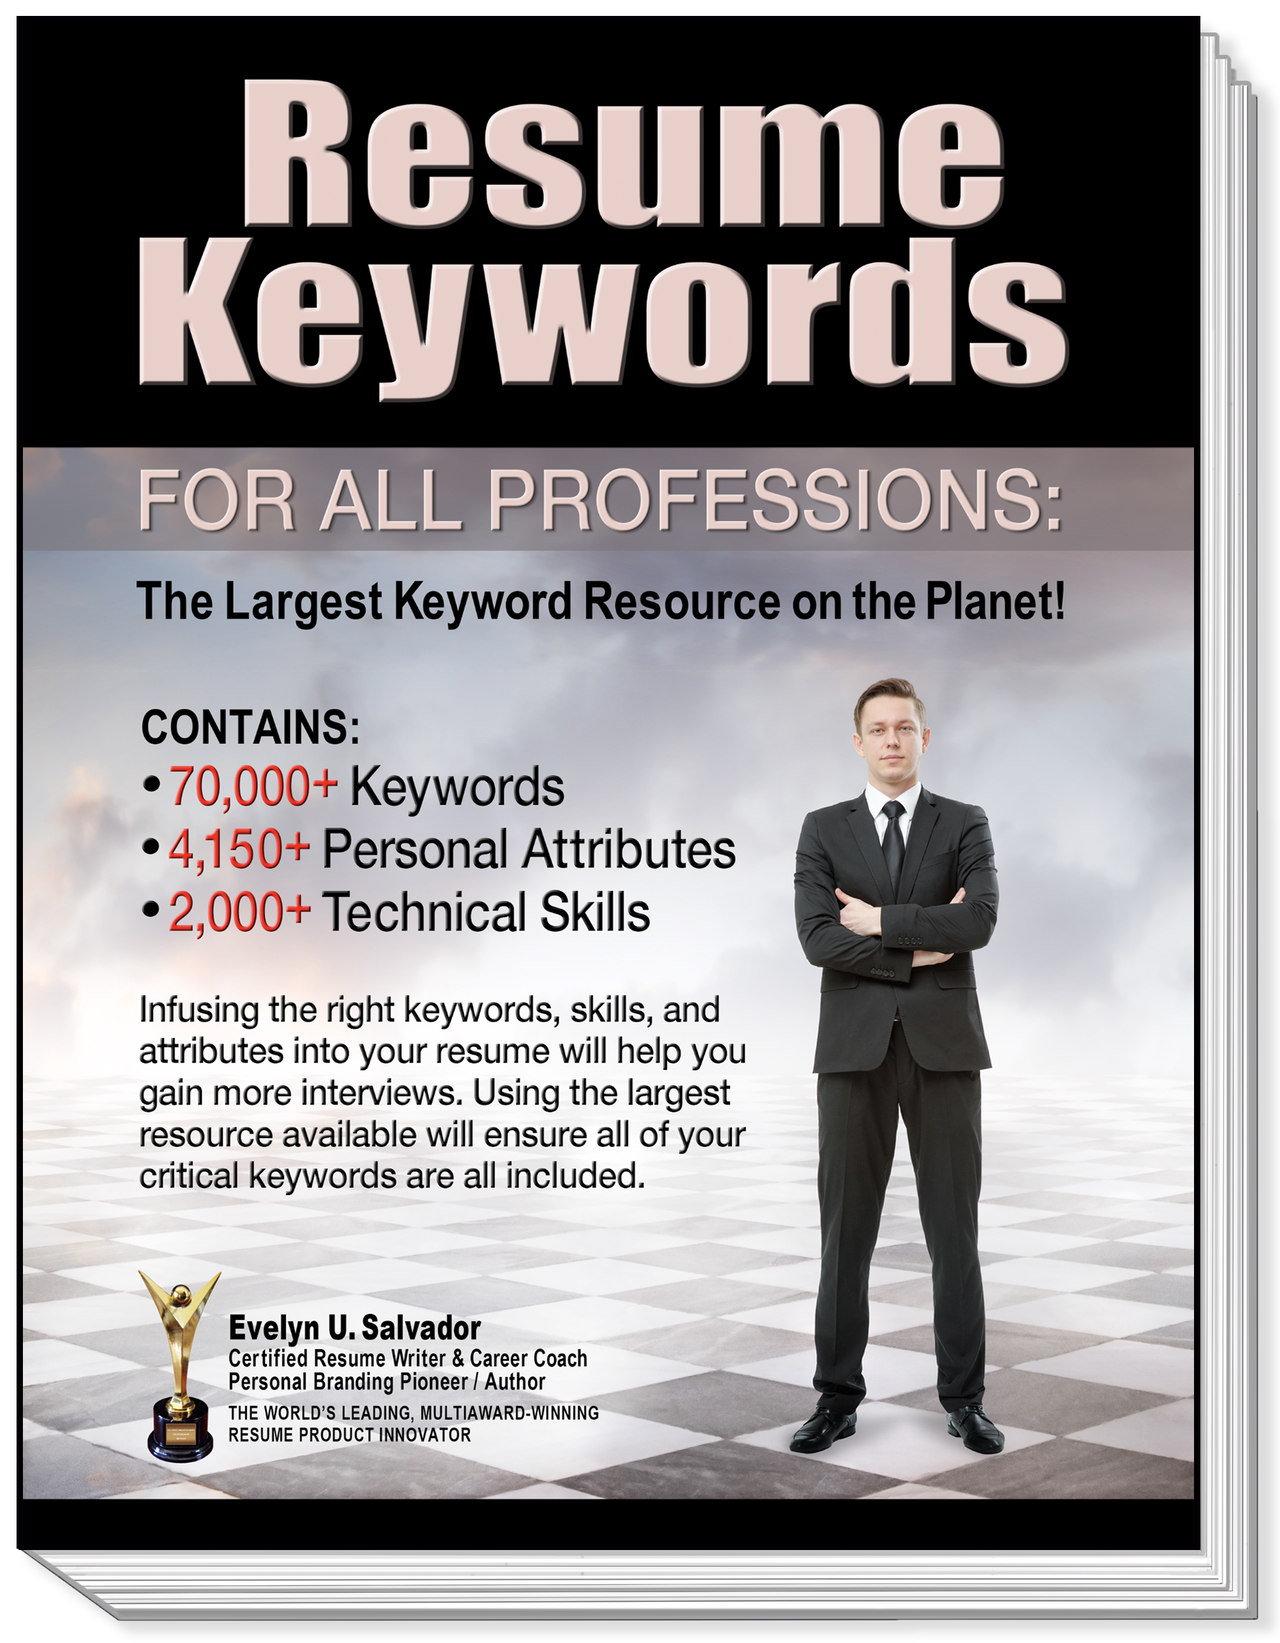 resume keywords book.png